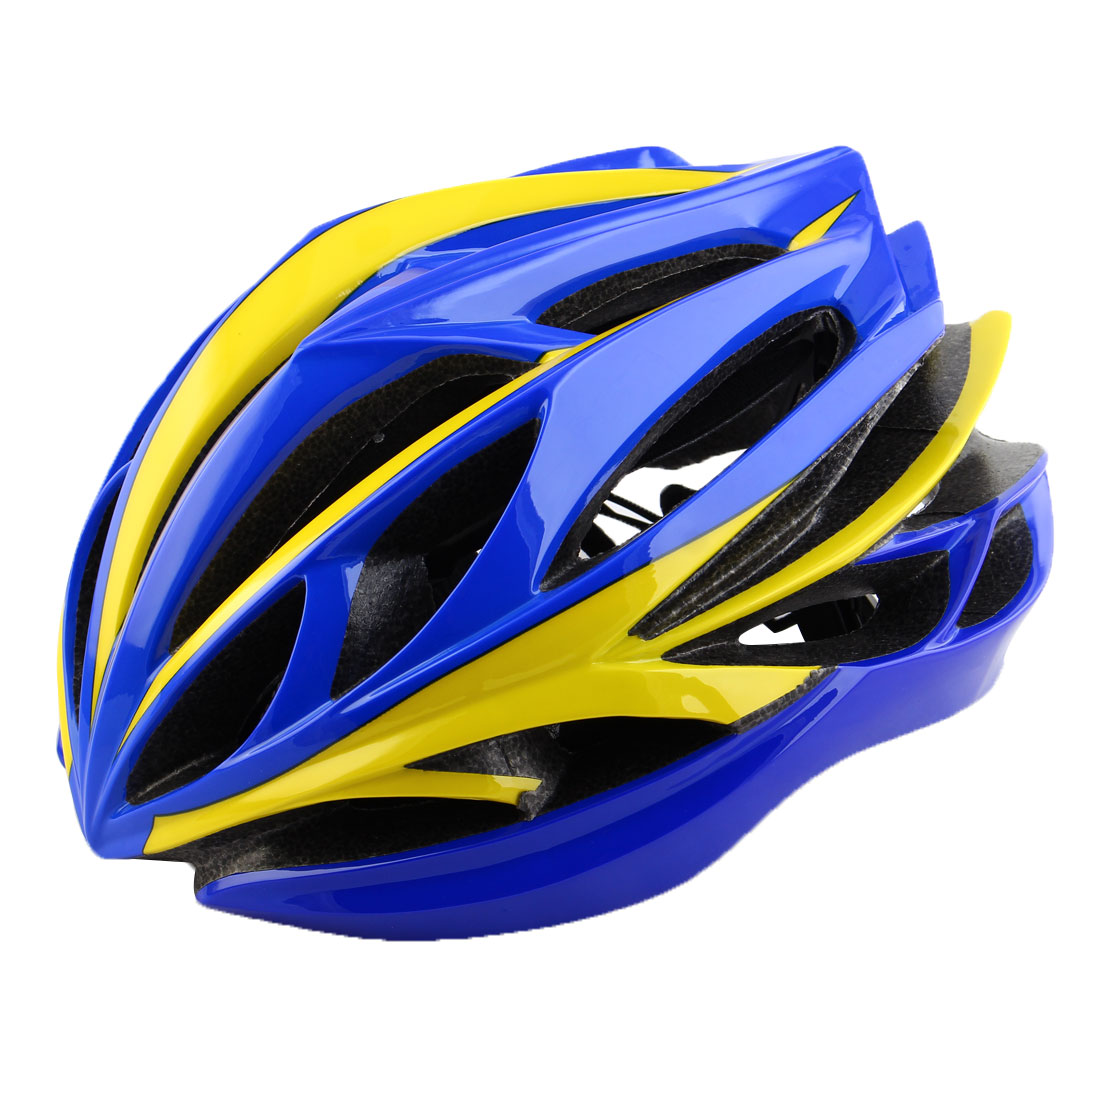 Patent Authorized Adult Unisex 22 Holes Cycling Cap Bicycle Hat Safety Protector Adjustable Bike Helmet Sapphire Blue